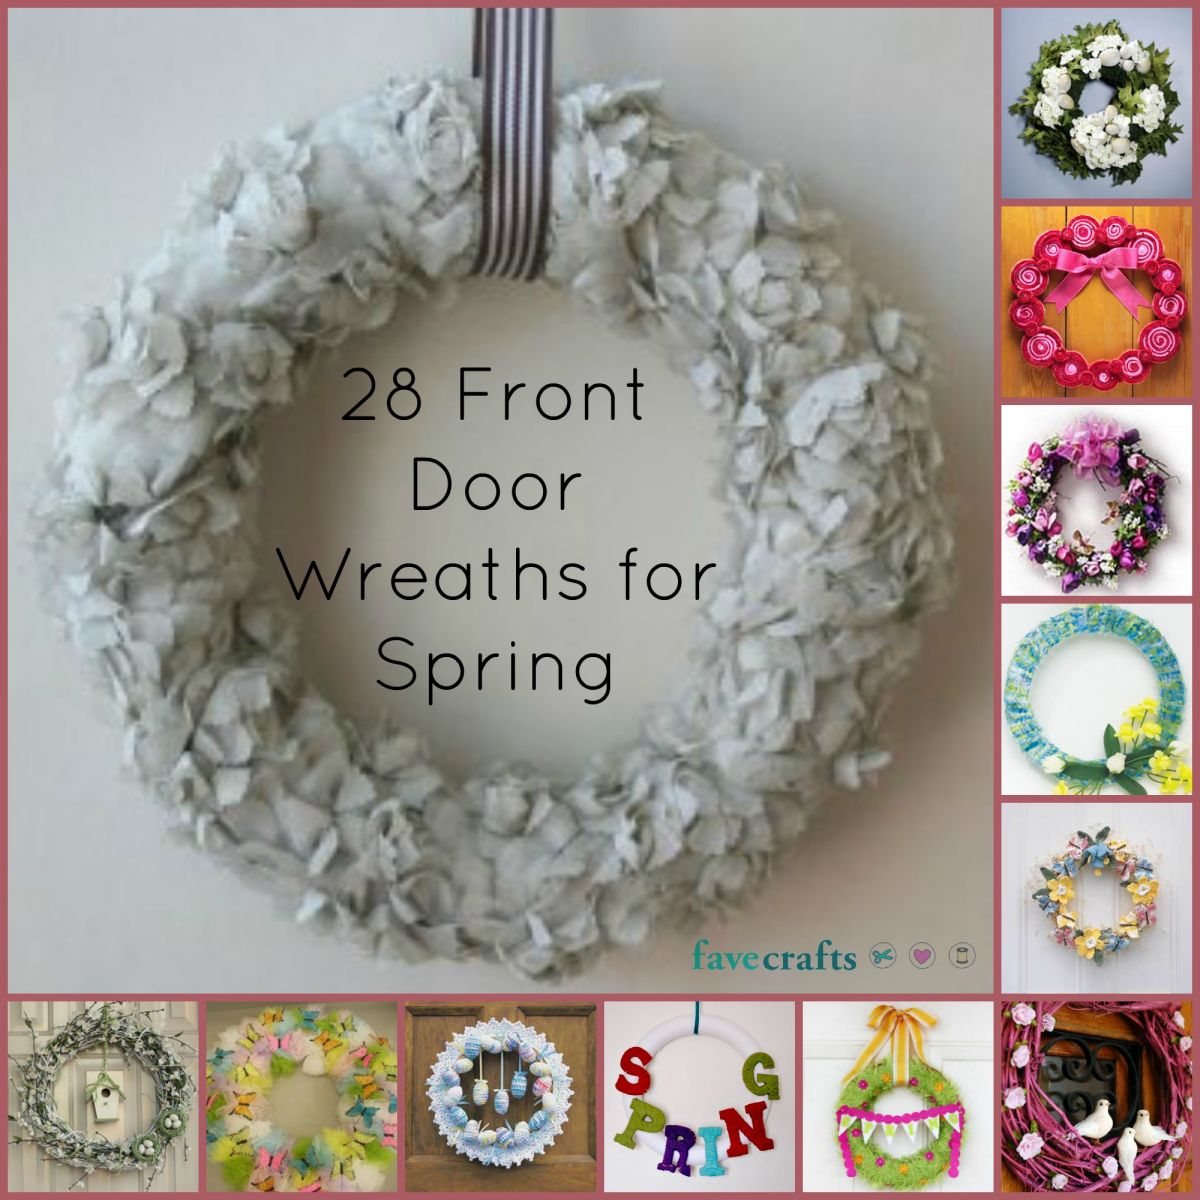 Front Door Wreaths for Spring